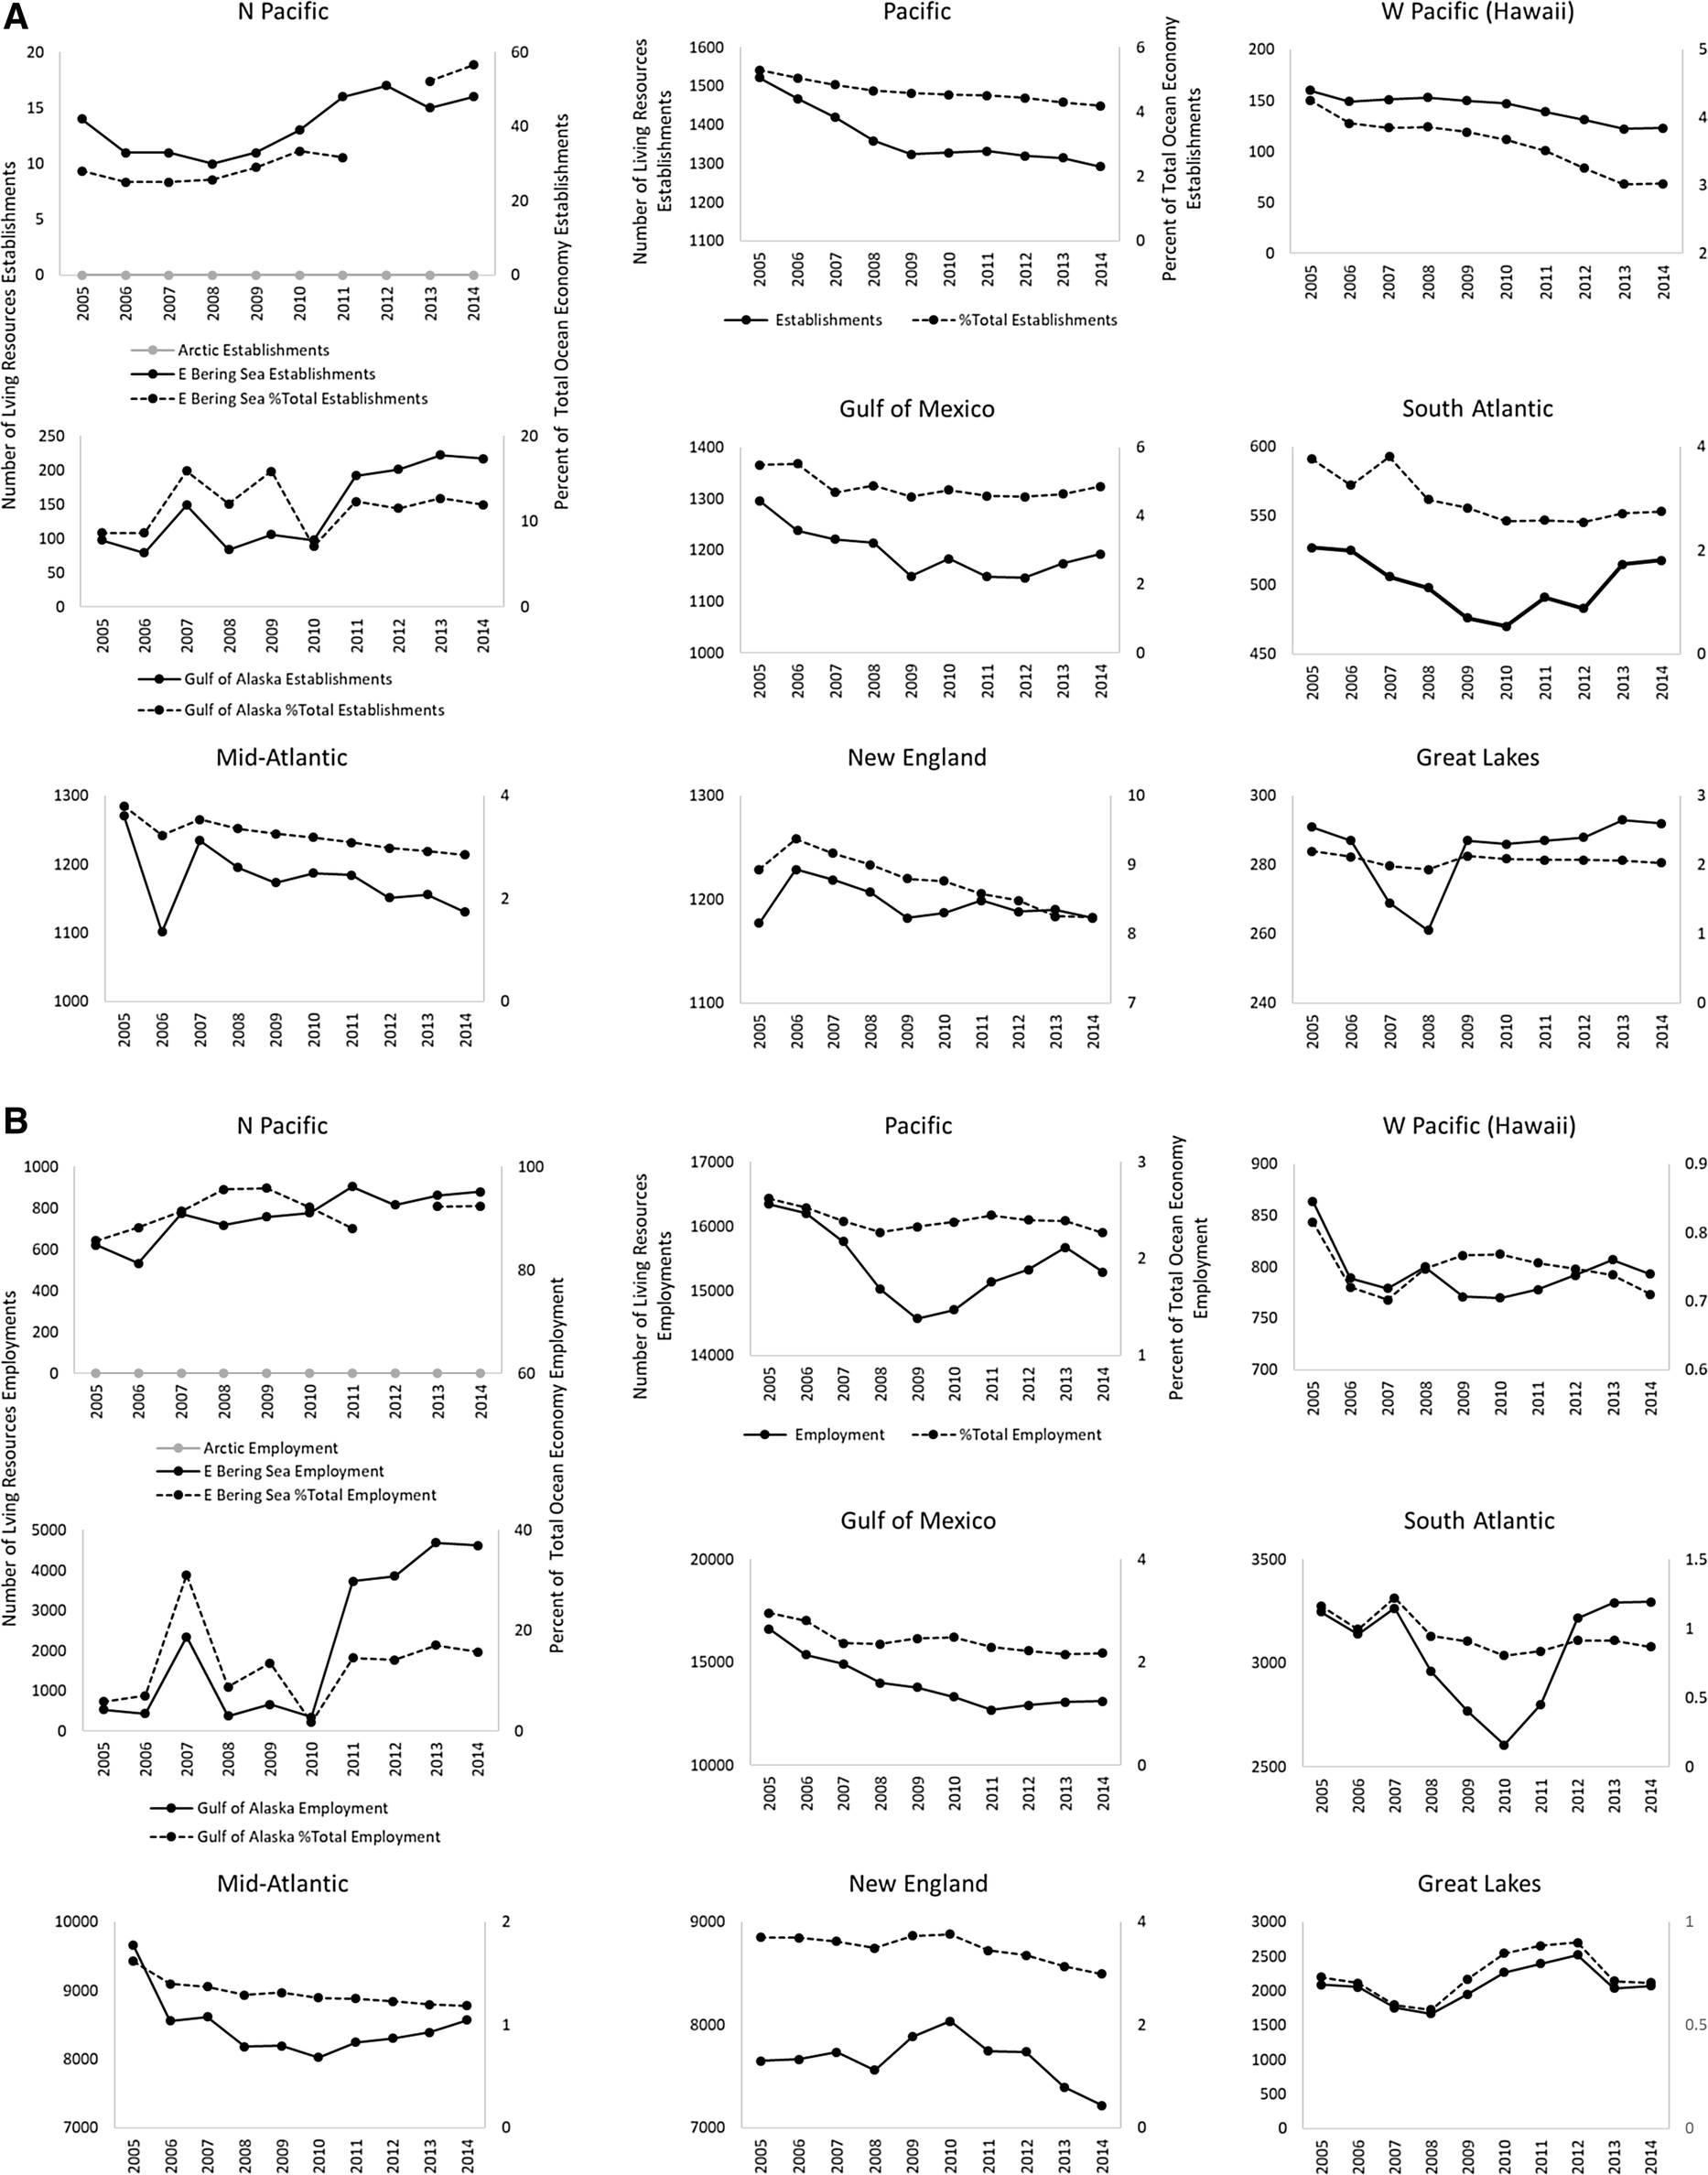 Characterizing and comparing marine fisheries ecosystems in